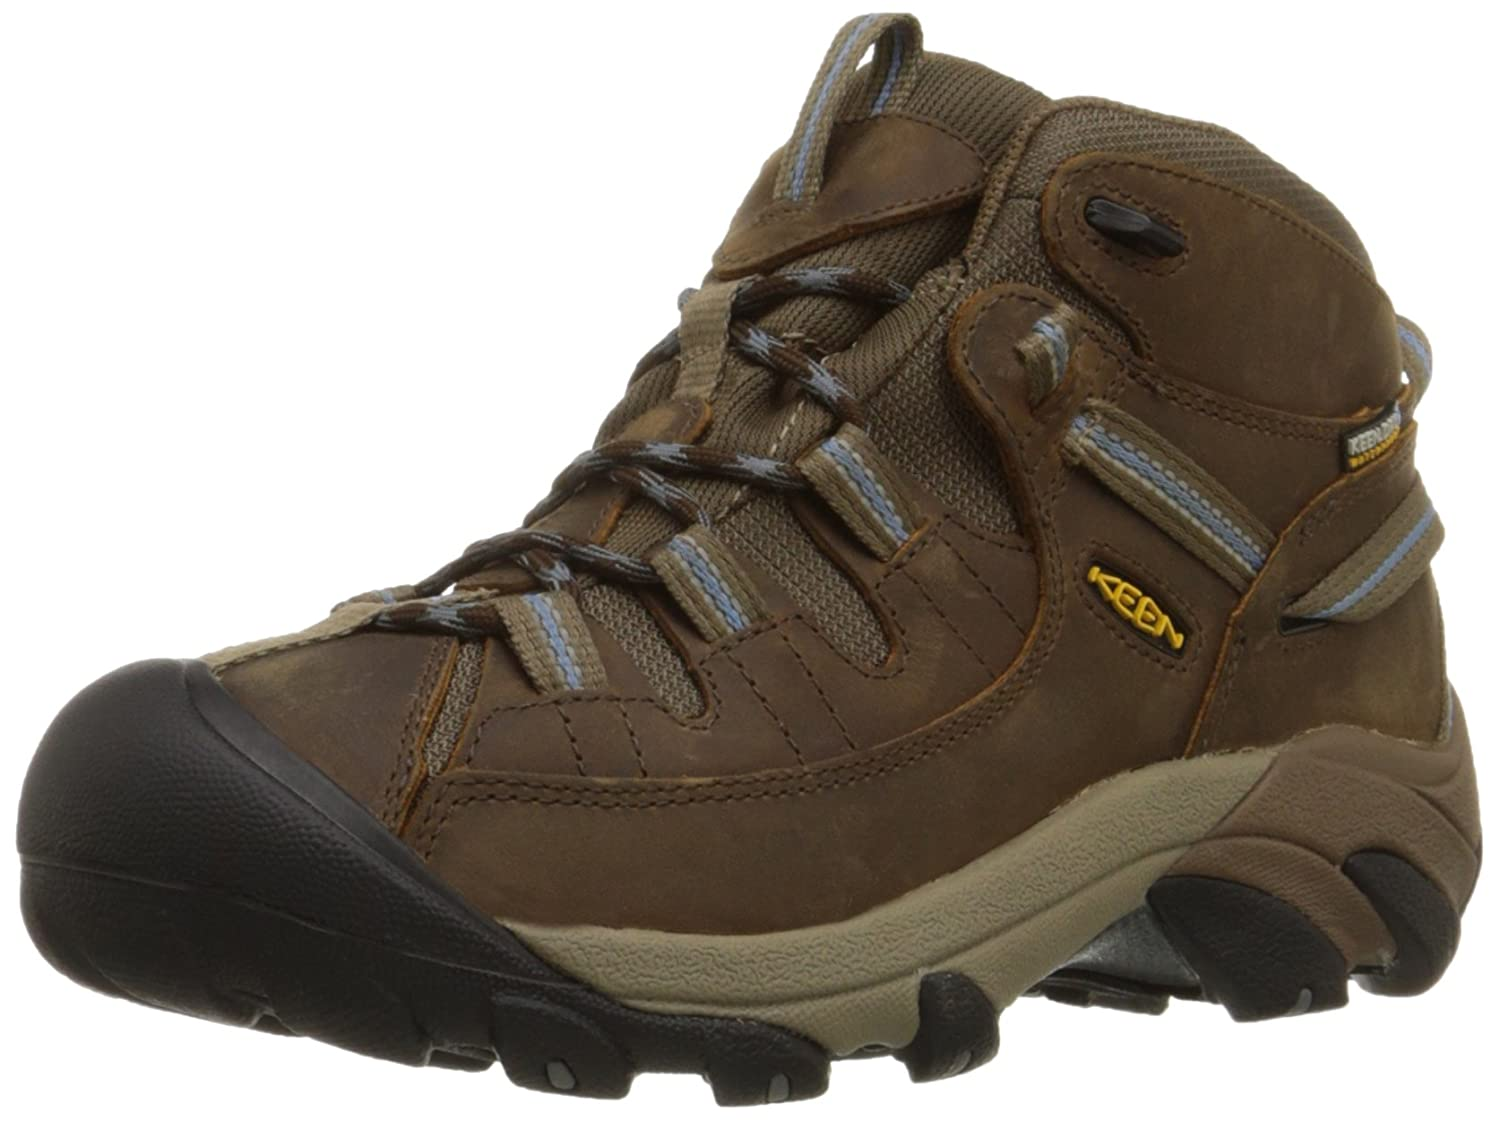 KEEN Women's Targhee II Mid Waterproof Hiking Boot,Slate Black/Flint Stone,11 M US B003JJ8ODE Parent